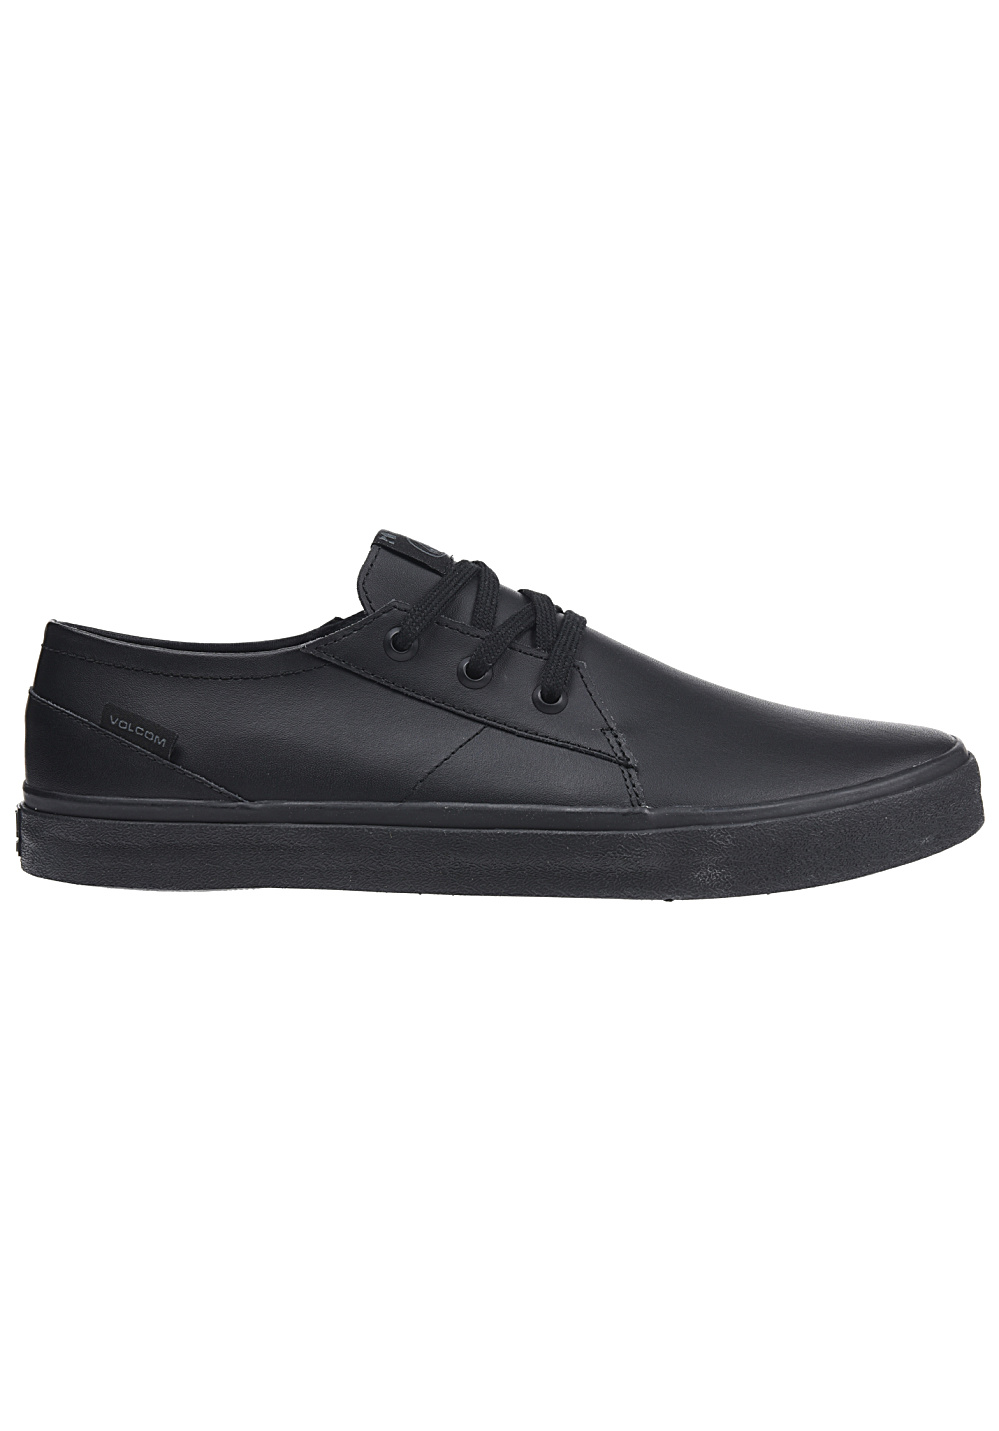 ... Volcom Lo Fi - Sneakers for Men - Black. Previous